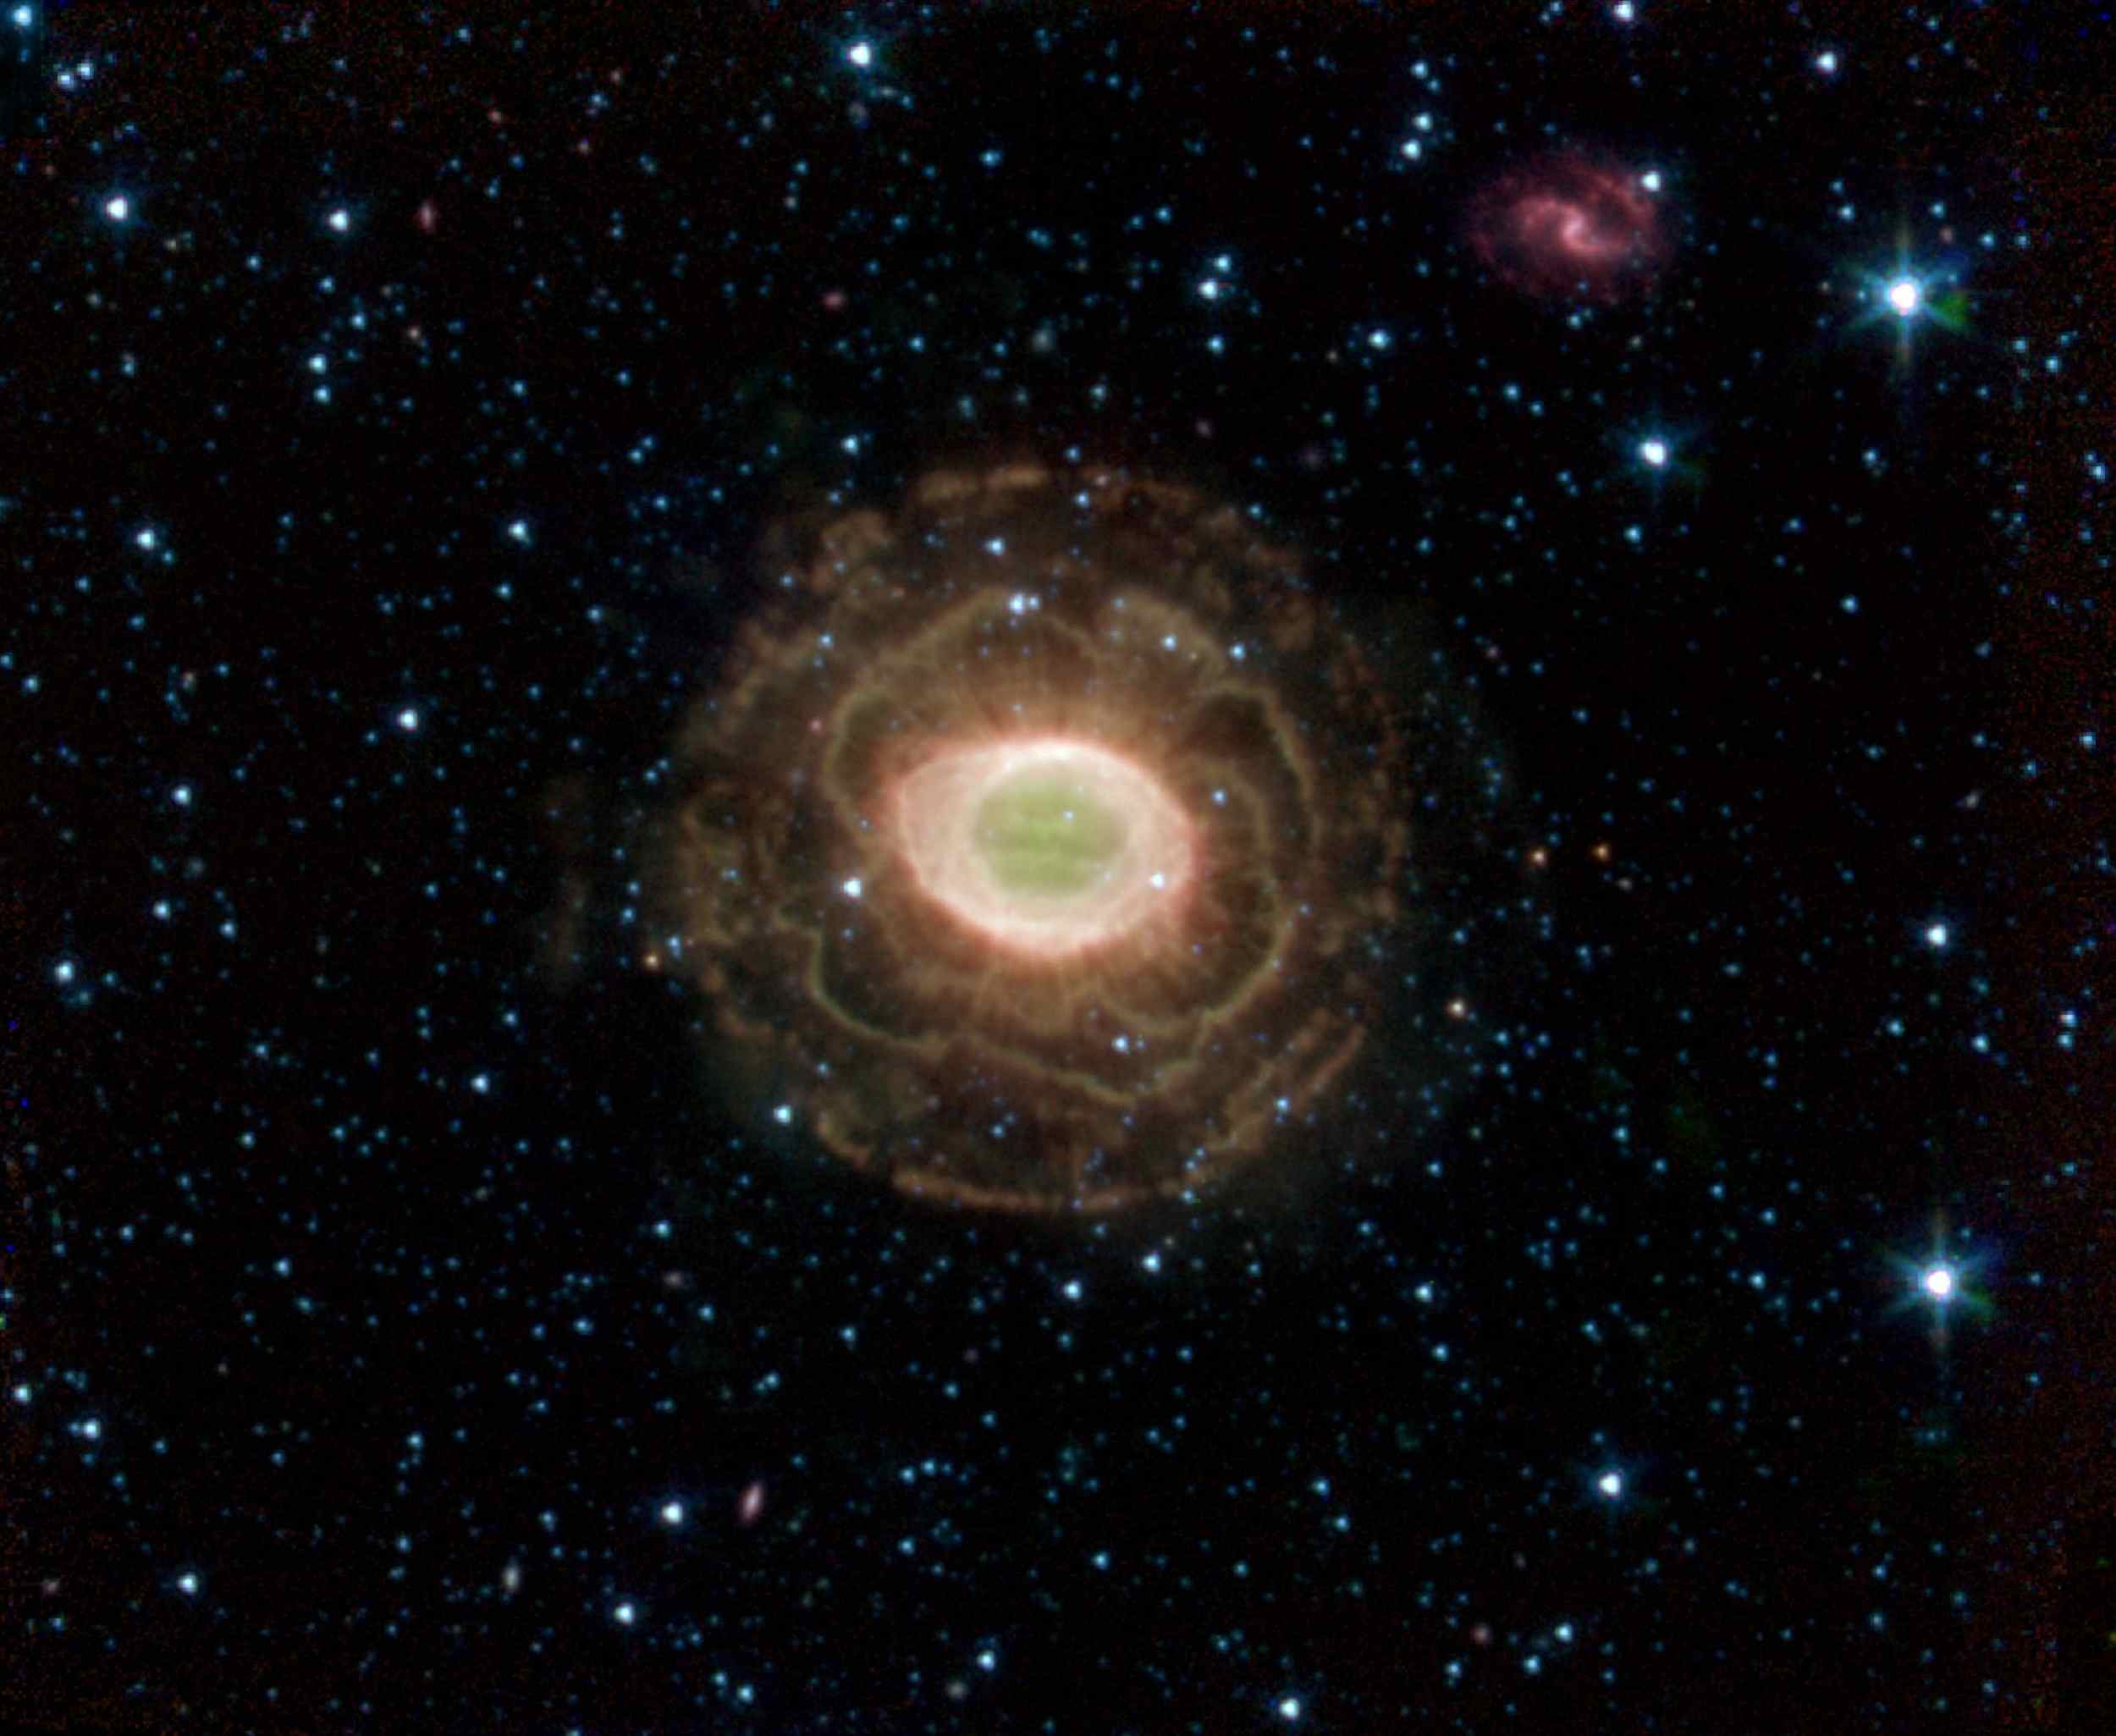 NASA's Spitzer Space Telescope finds a delicate flower in the Ring Nebula, as shown in this image. The outer shell of this planetary nebula looks surprisingly similar to the delicate petals of a camellia blossom.